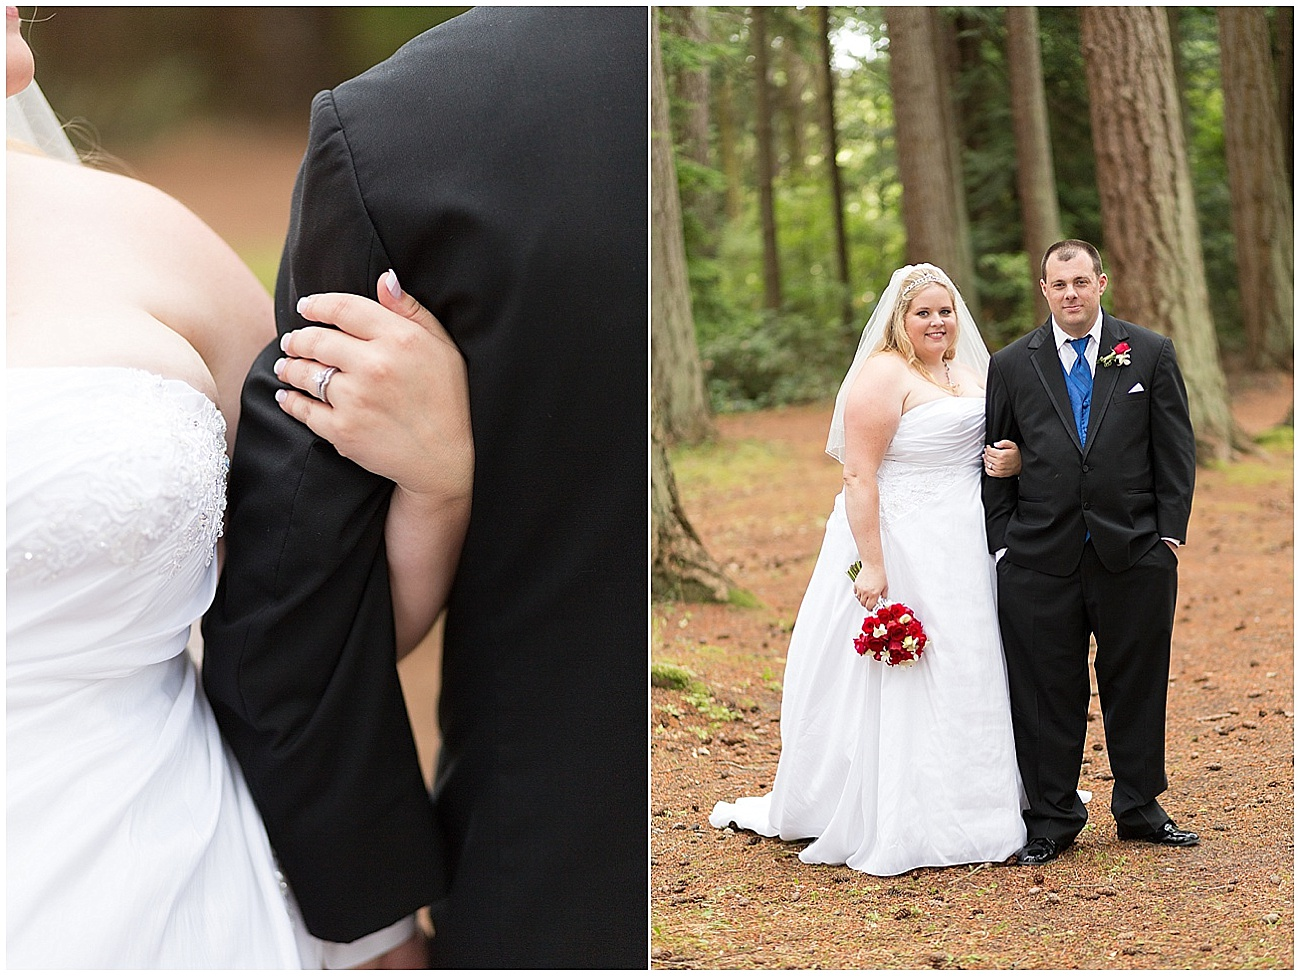 Hux_KitsapMemorialPark_Wedding_0004